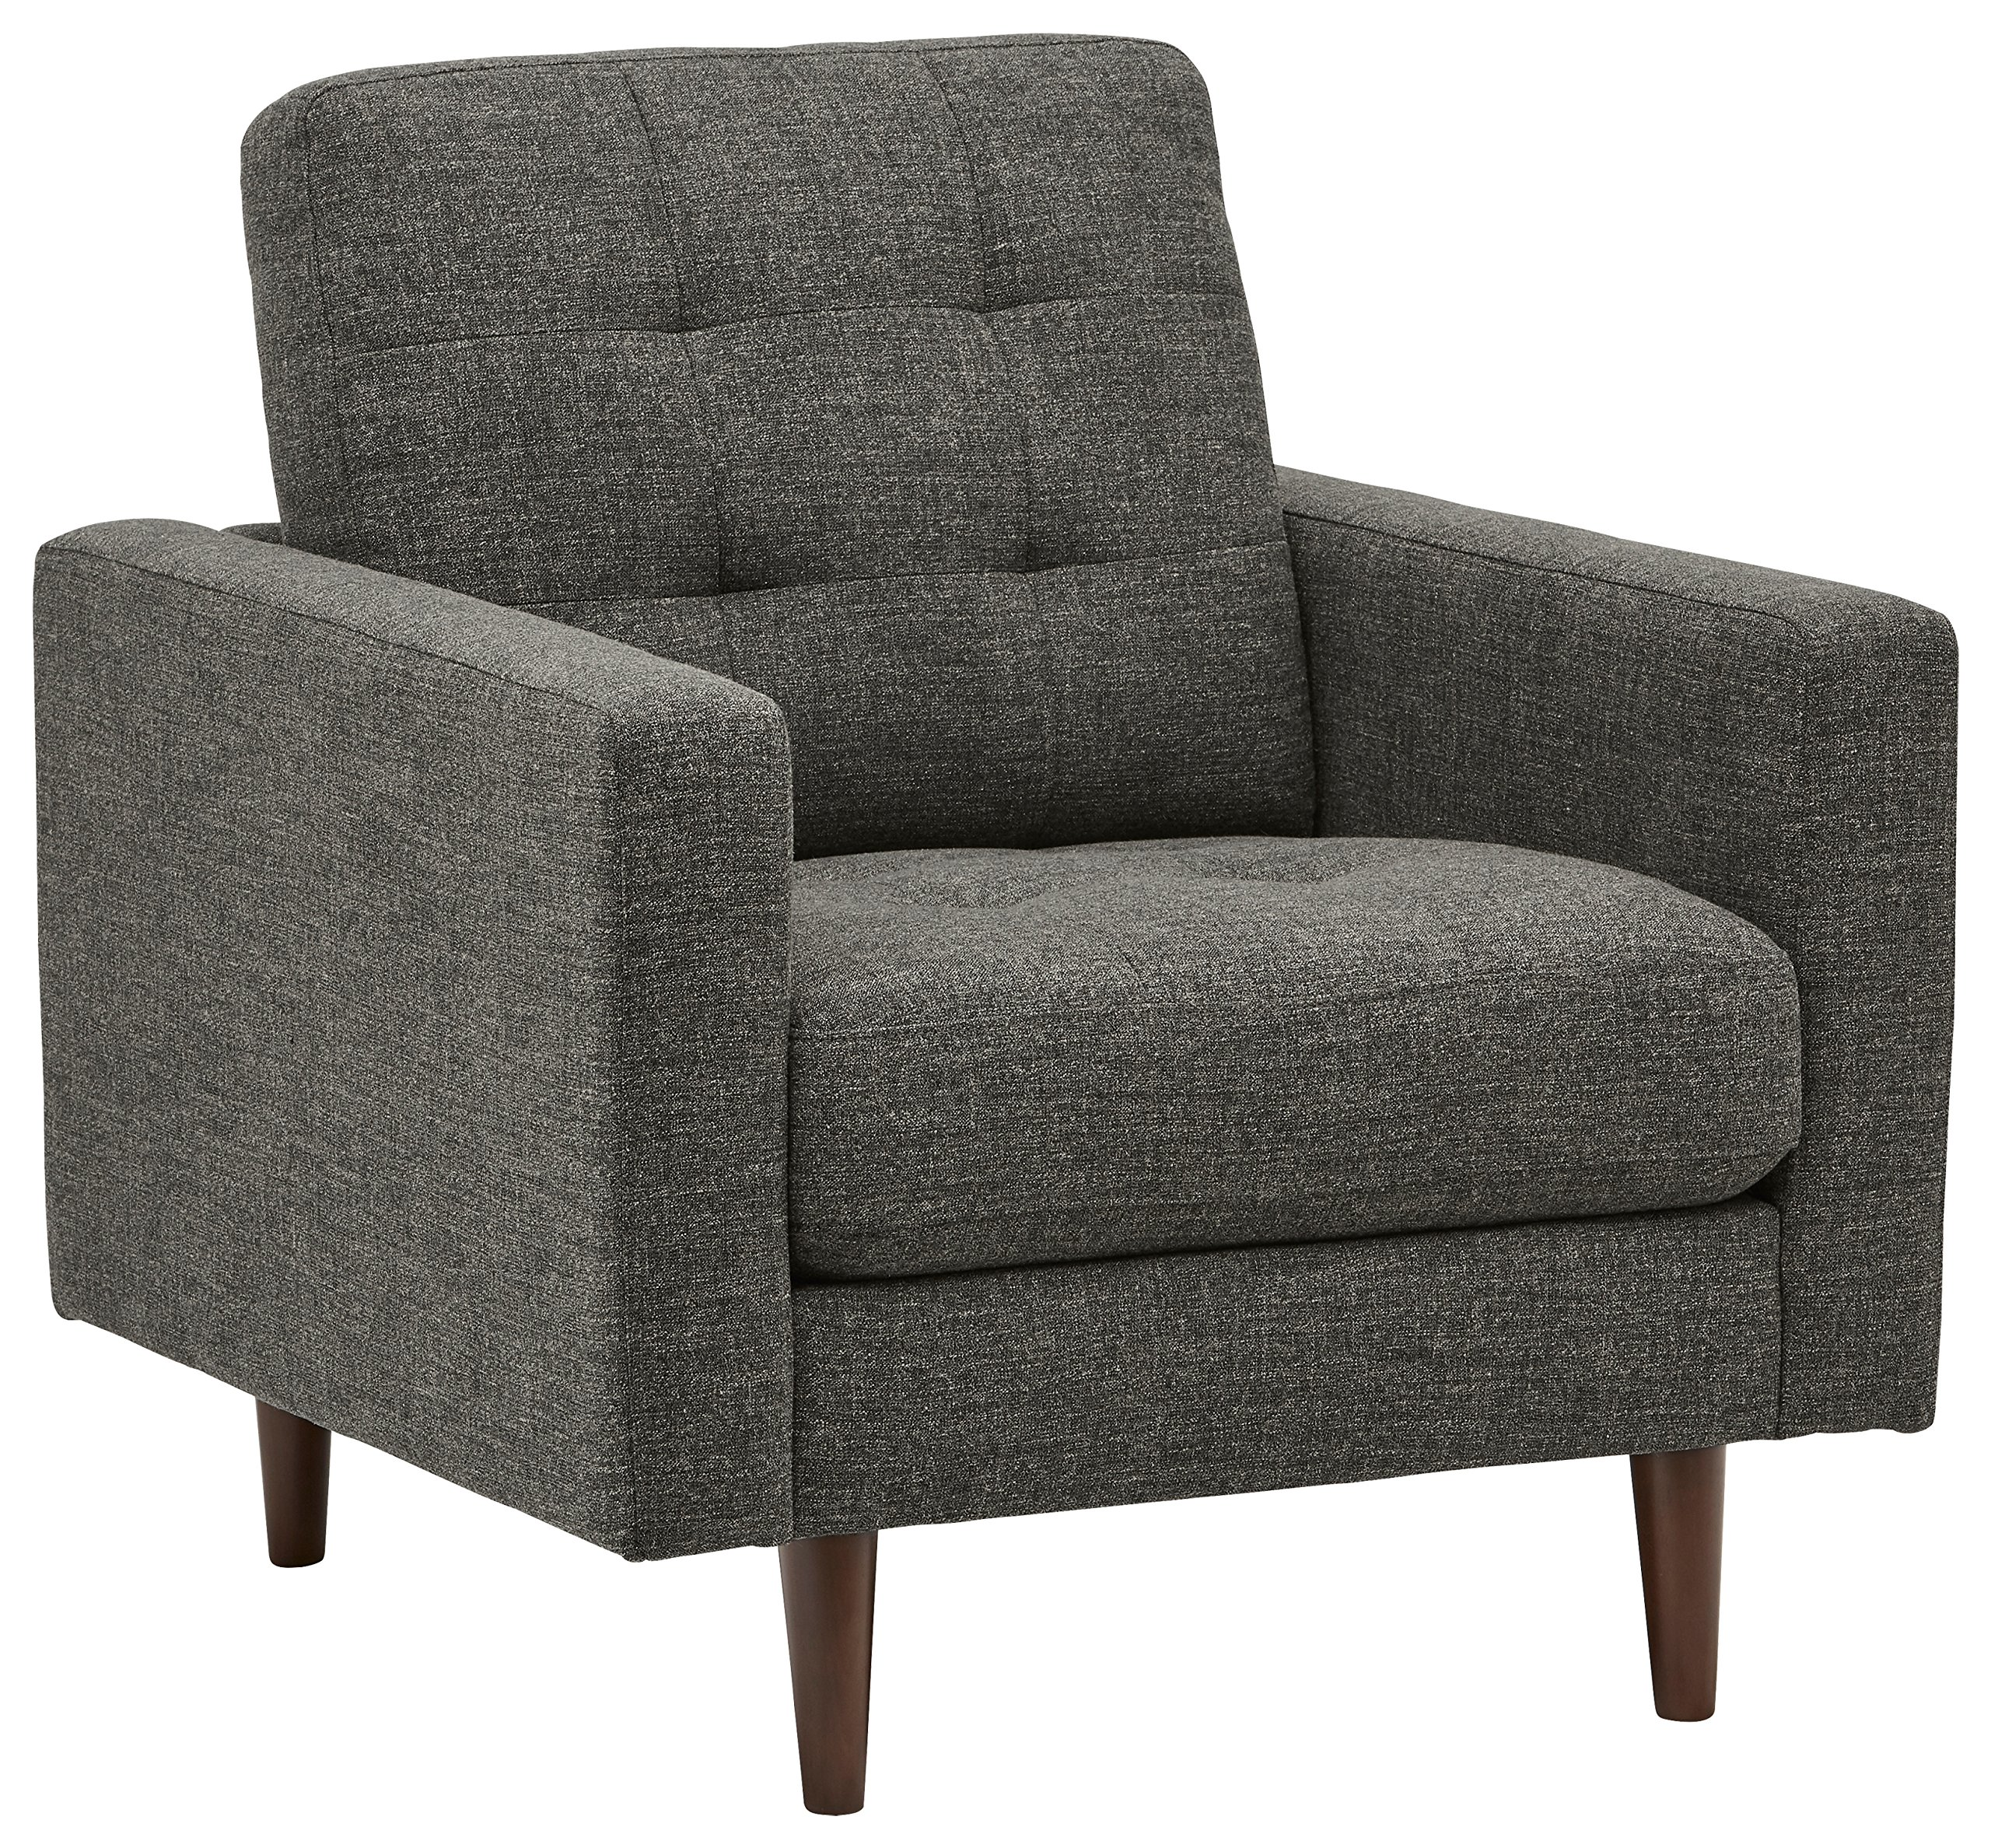 Rivet Cove Mid-Century Tufted Accent Chair, Dark Grey